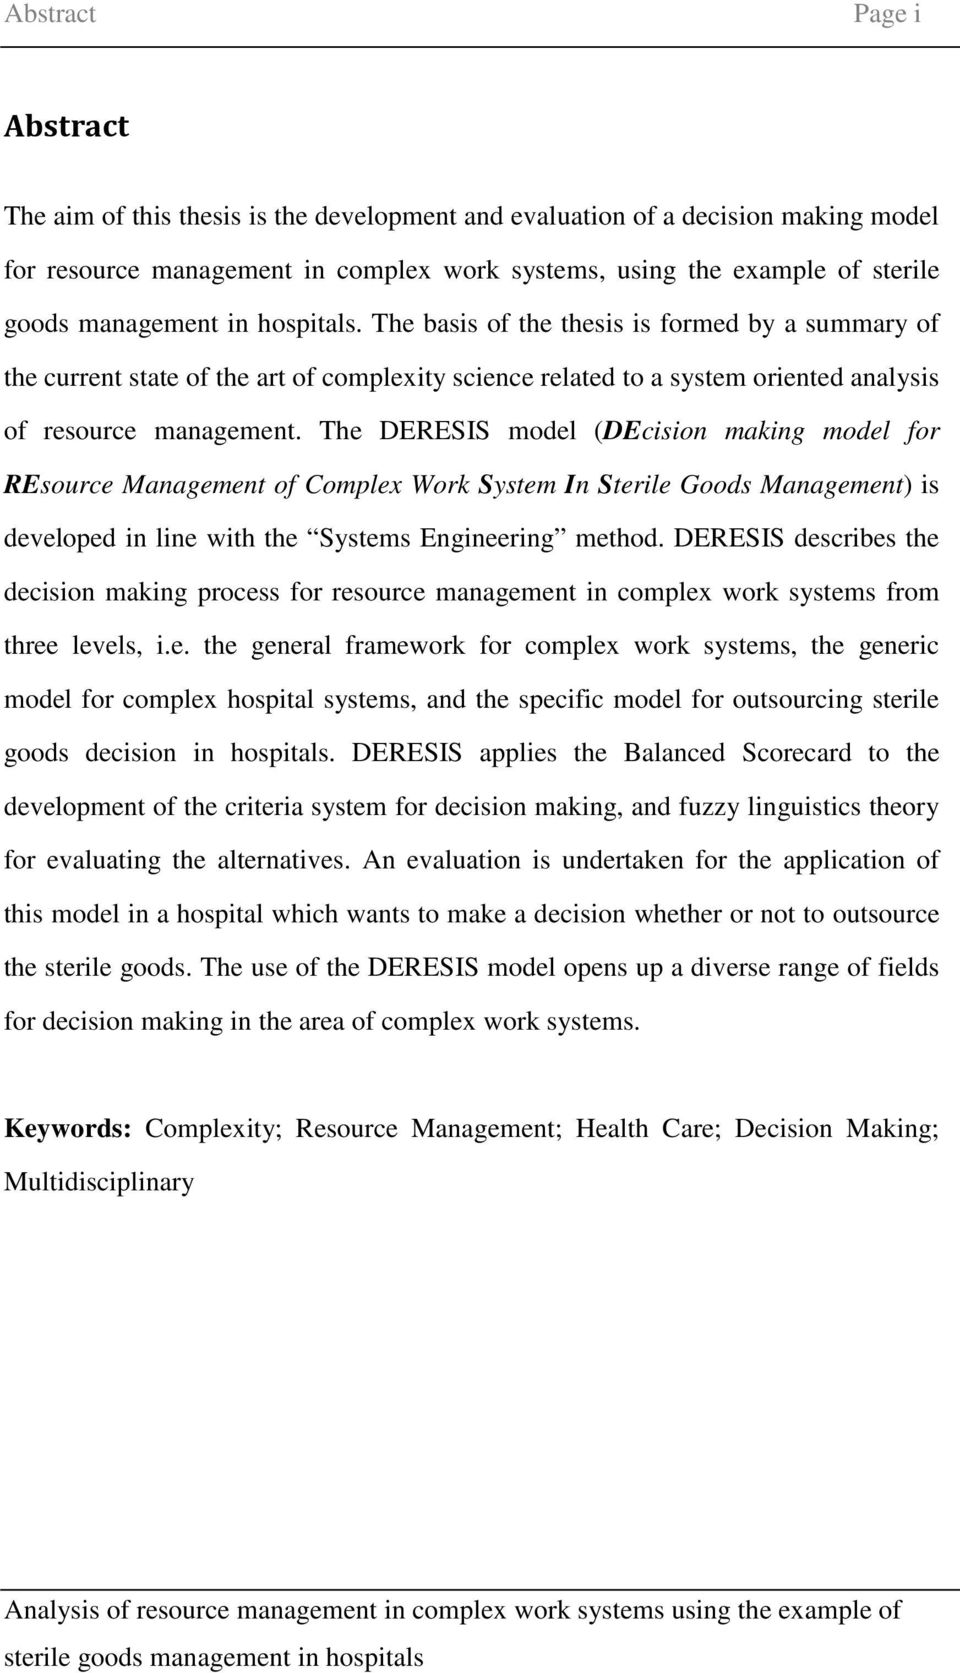 The DERESIS model (DEcision making model for REsource Management of Complex Work System In Sterile Goods Management) is developed in line with the Systems Engineering method.